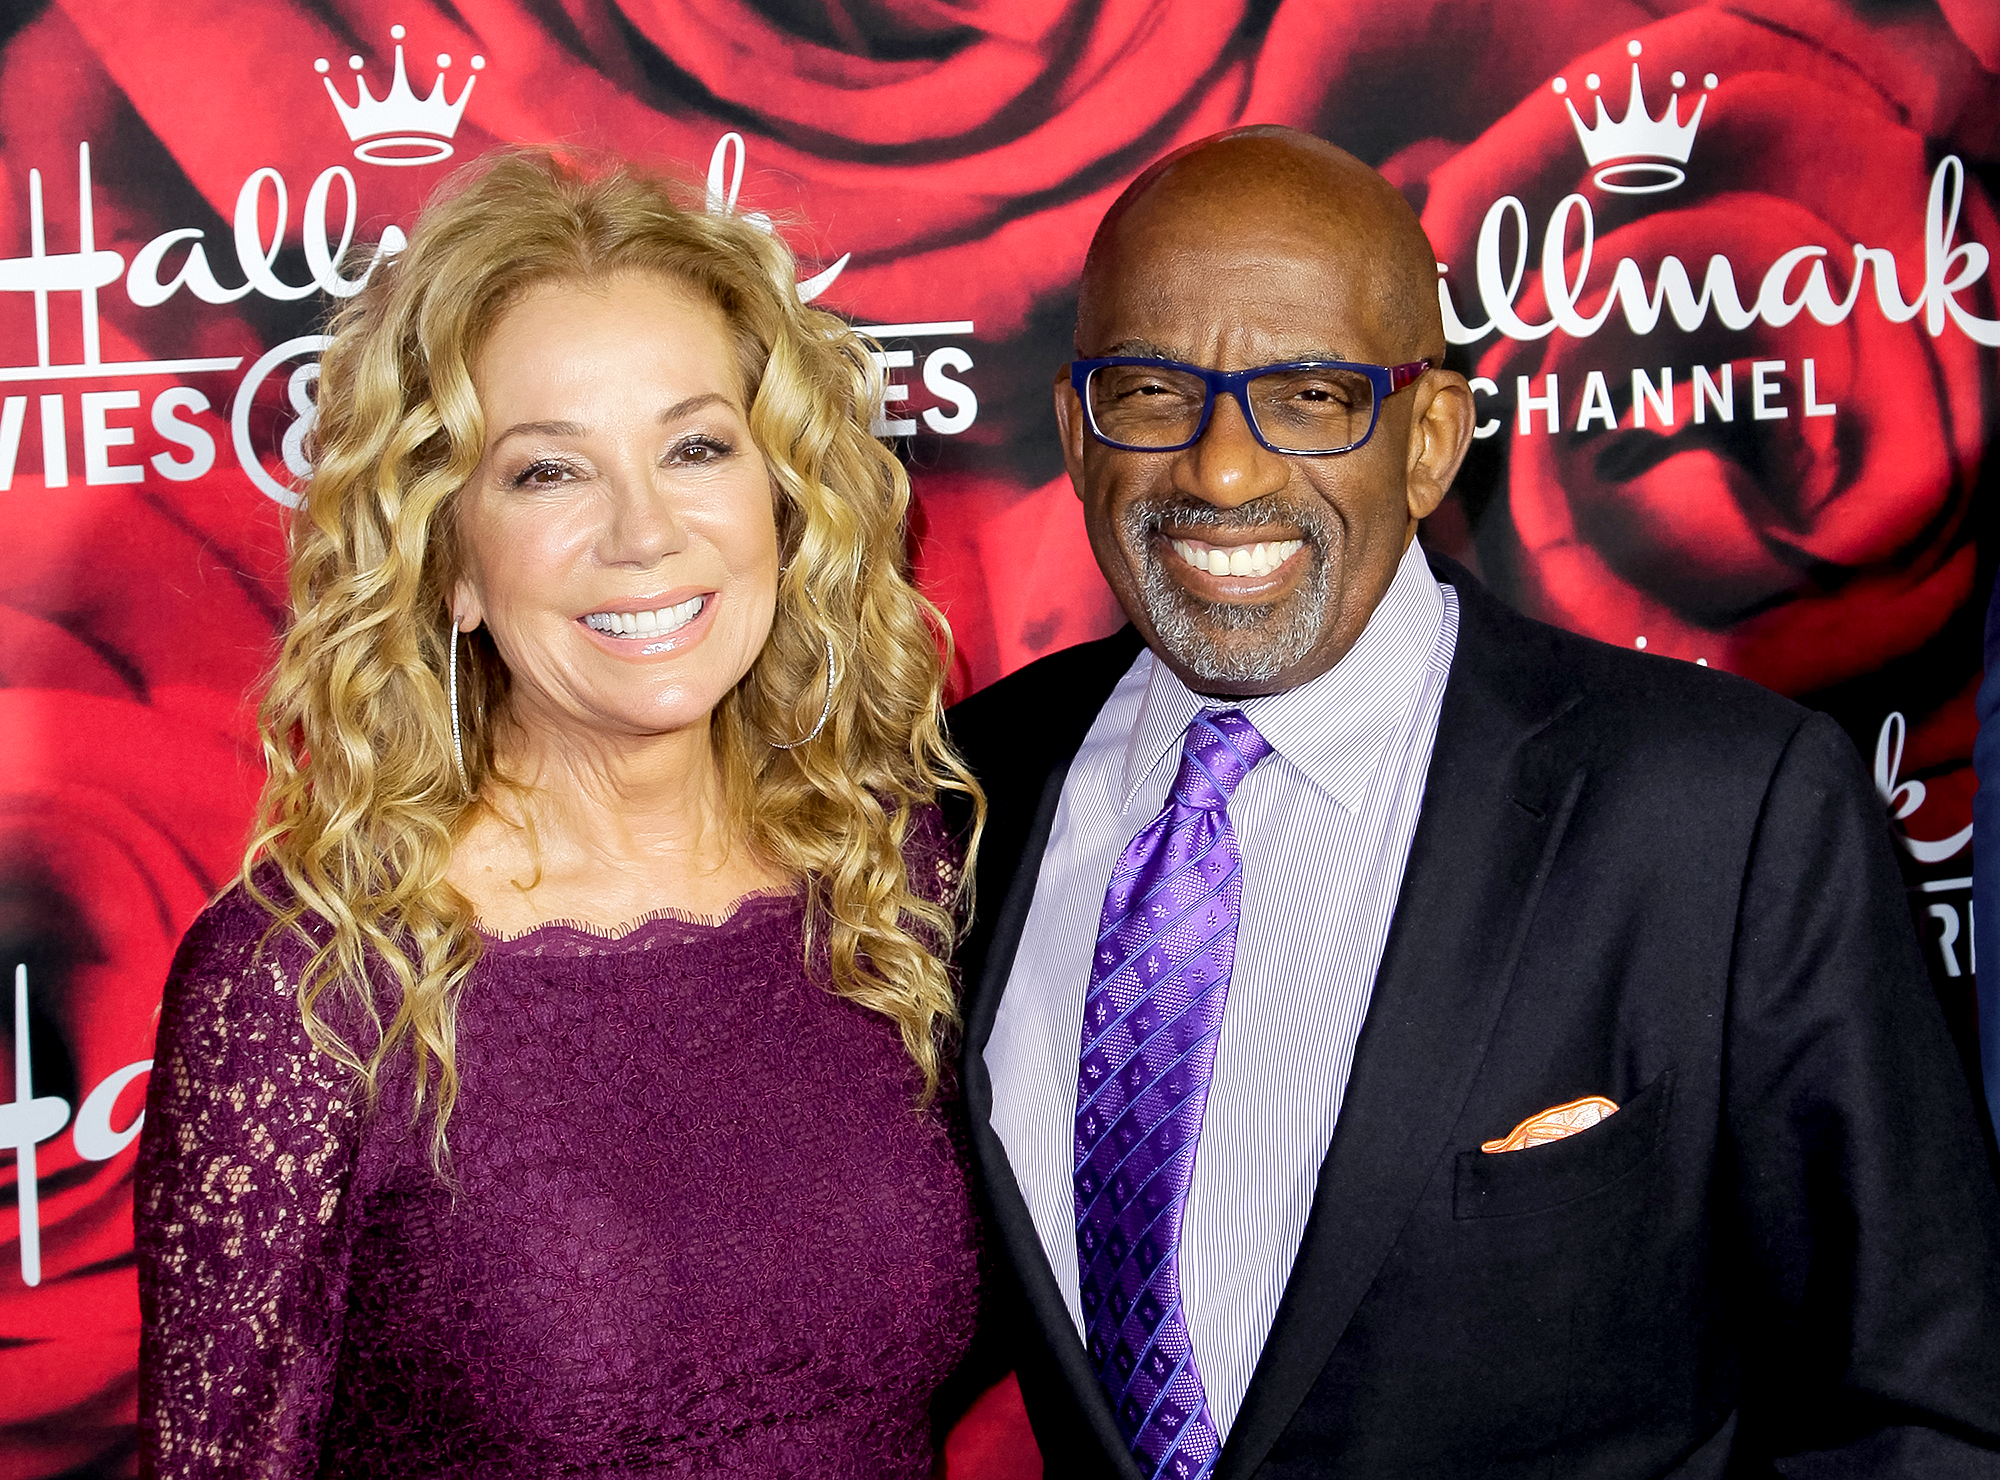 """Kathie-Lee-Gifford-and-Al-Roker - """"She's the same person as always, a true talent. She's not worried about her brand, she's just her. The next generation can learn from her, every generation loves her. She's either the feisty grandma, the outspoken mom, or the friend that tells it like it is!"""""""